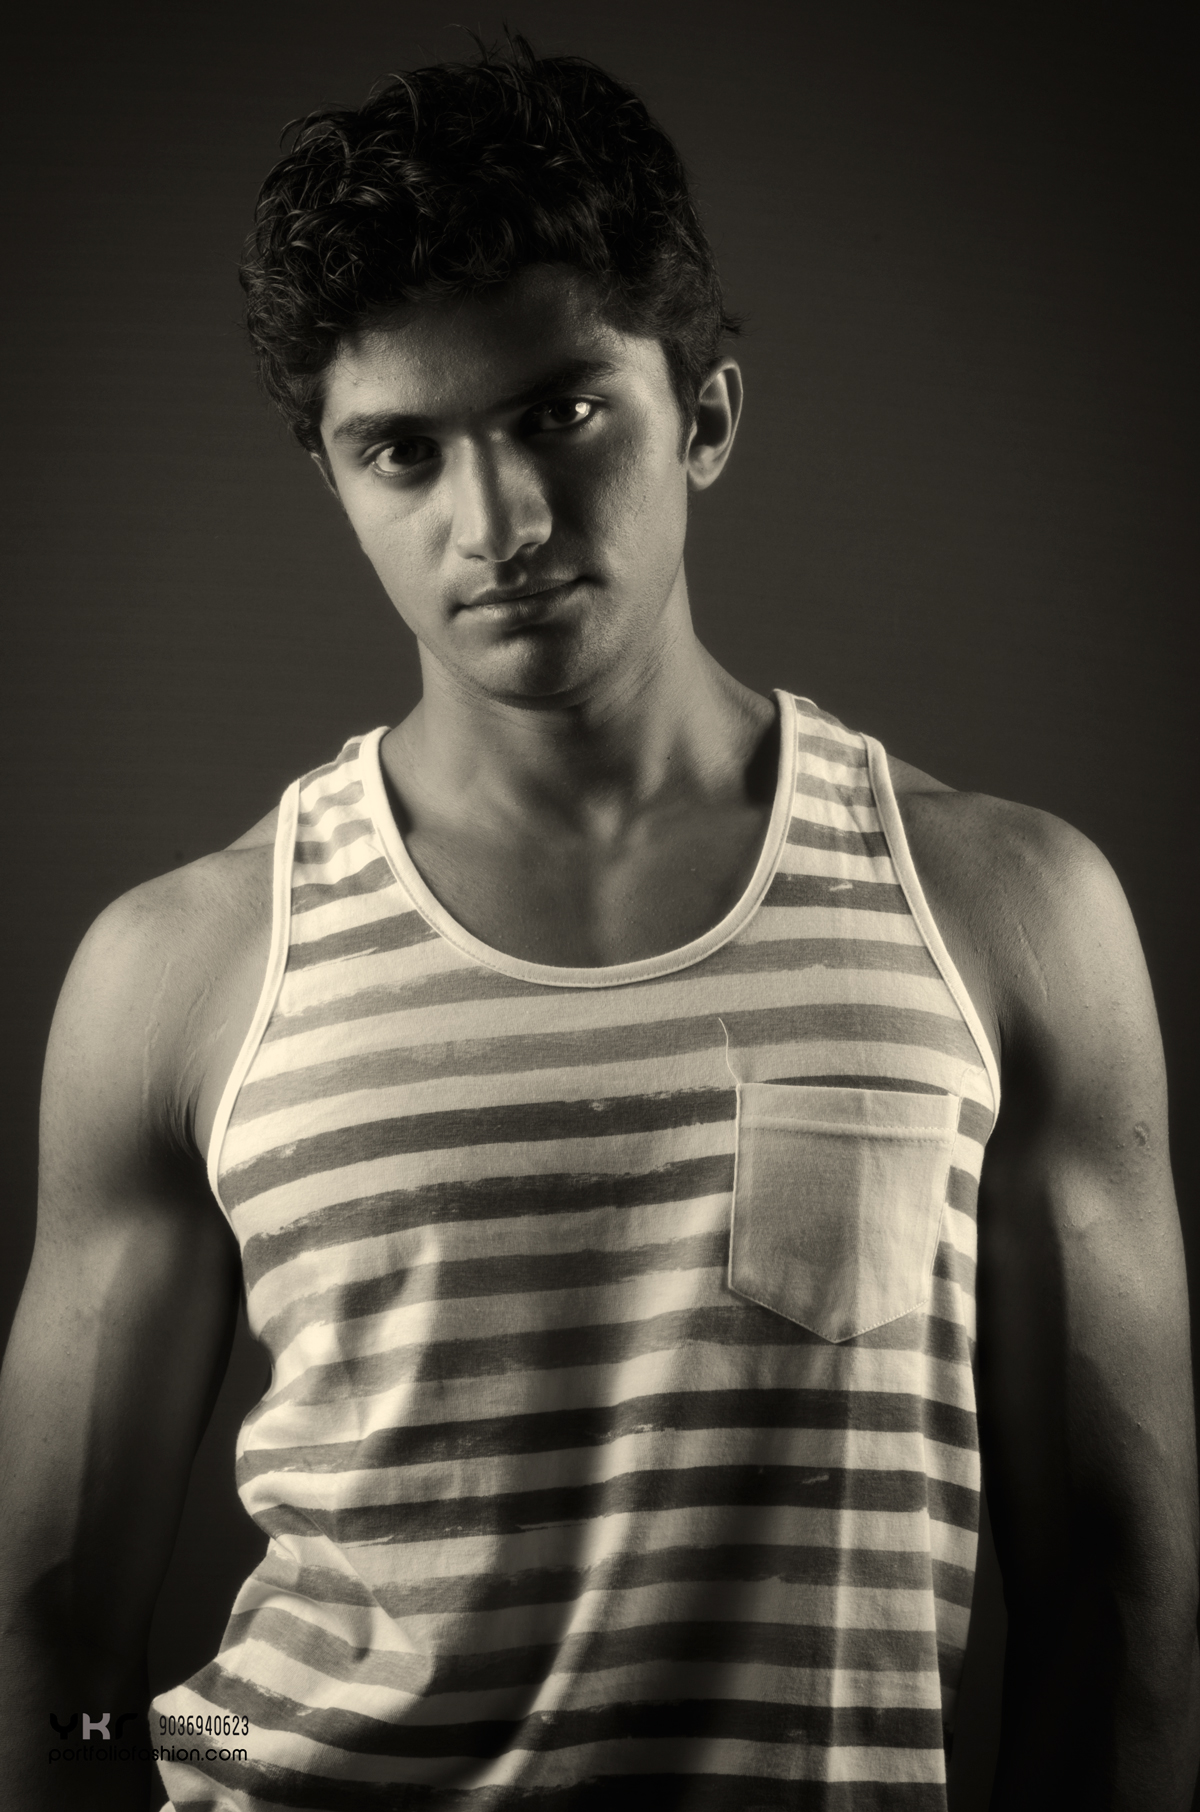 Male Model Bangalore, India's best male model, modeling photography in Bangalore